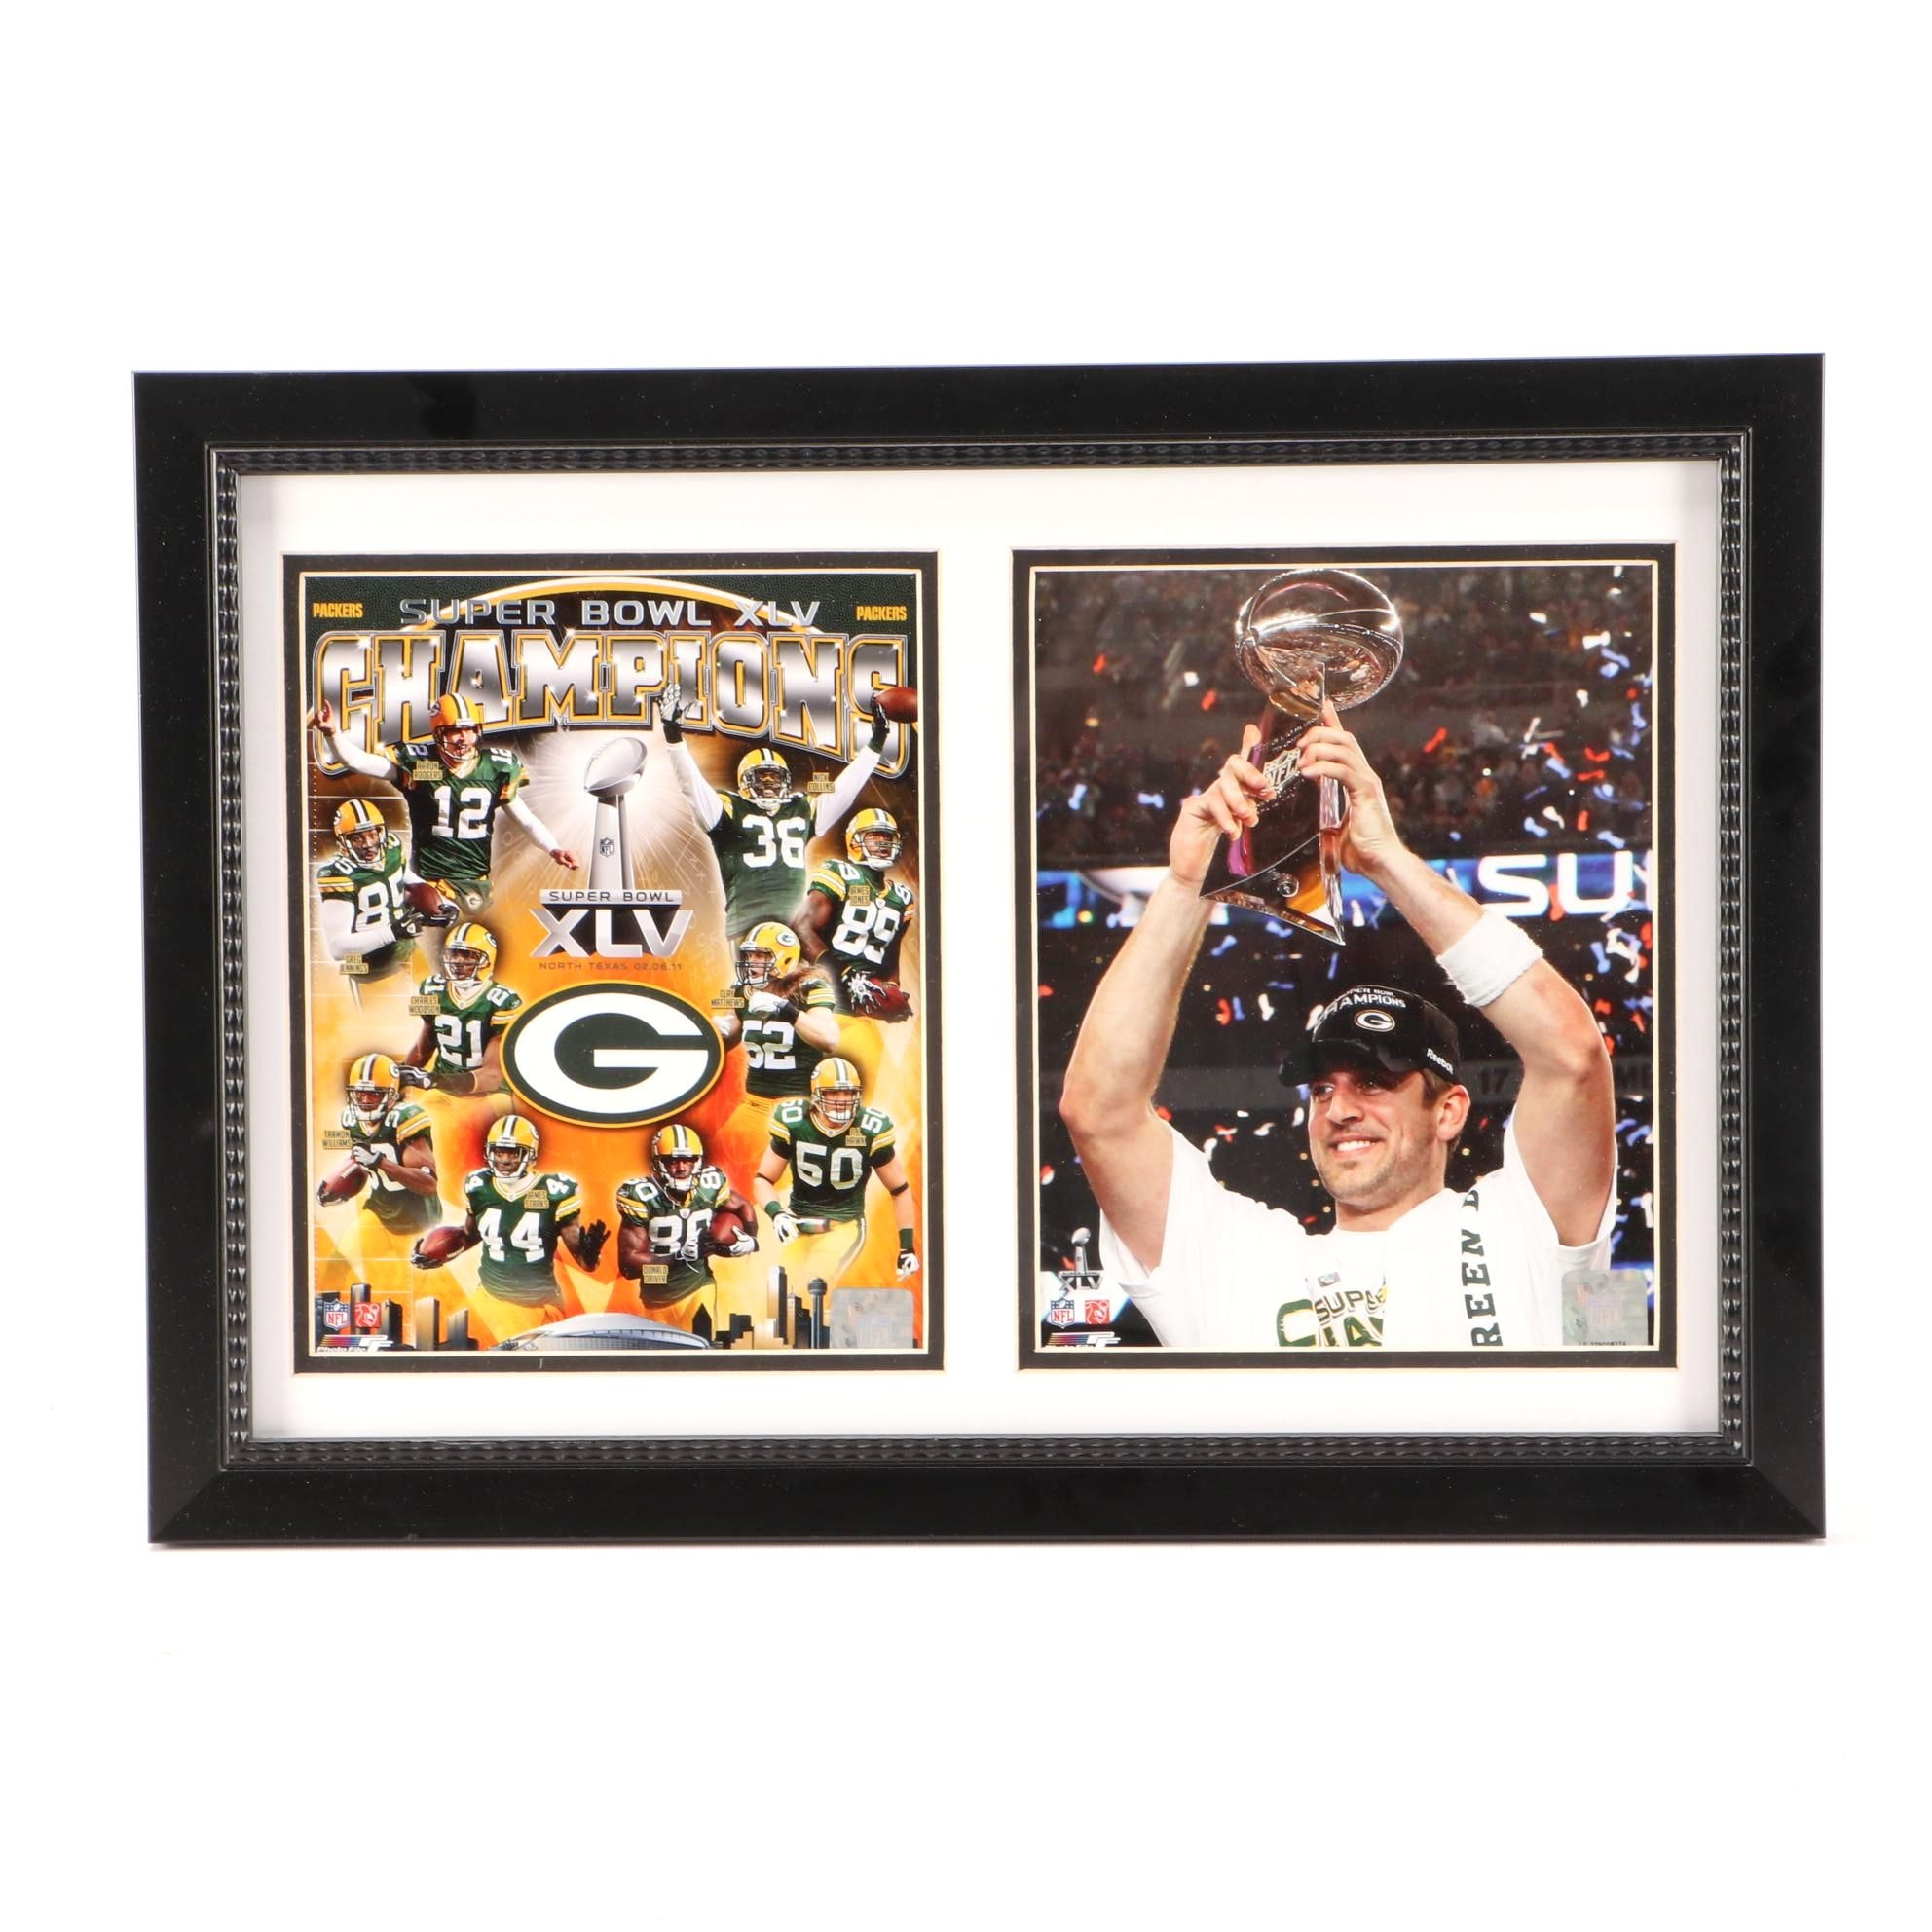 Super Bowl XLV Champs Green Bay Packers Matted and Framed NFL Football Display